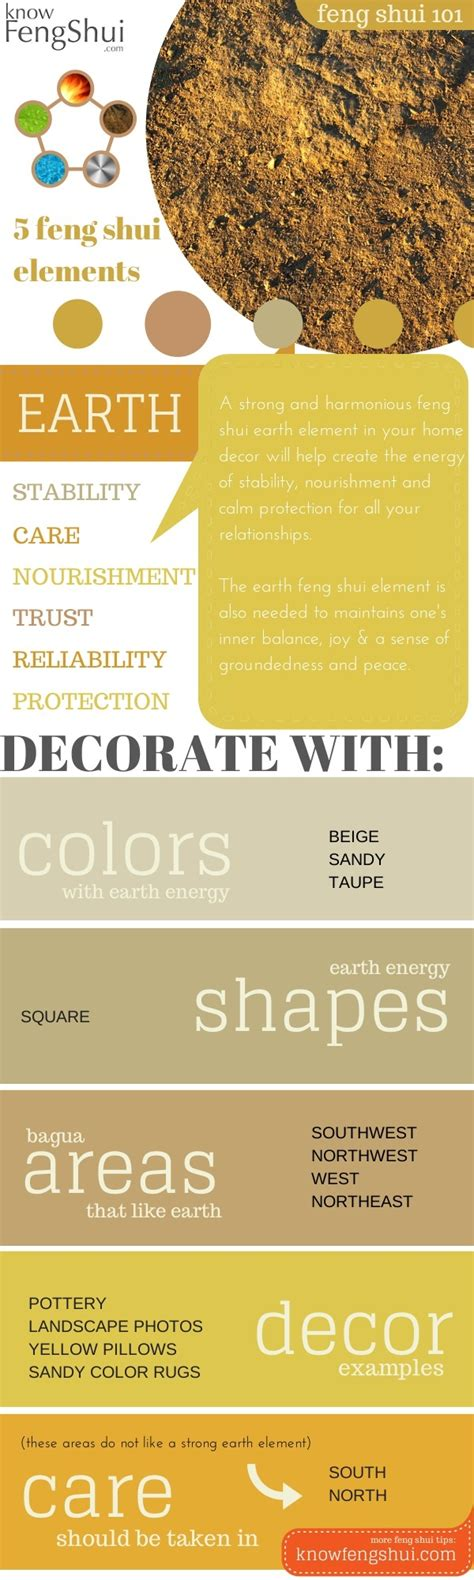 the best height for hanging art with infographic feng shui decorating colors iron blog